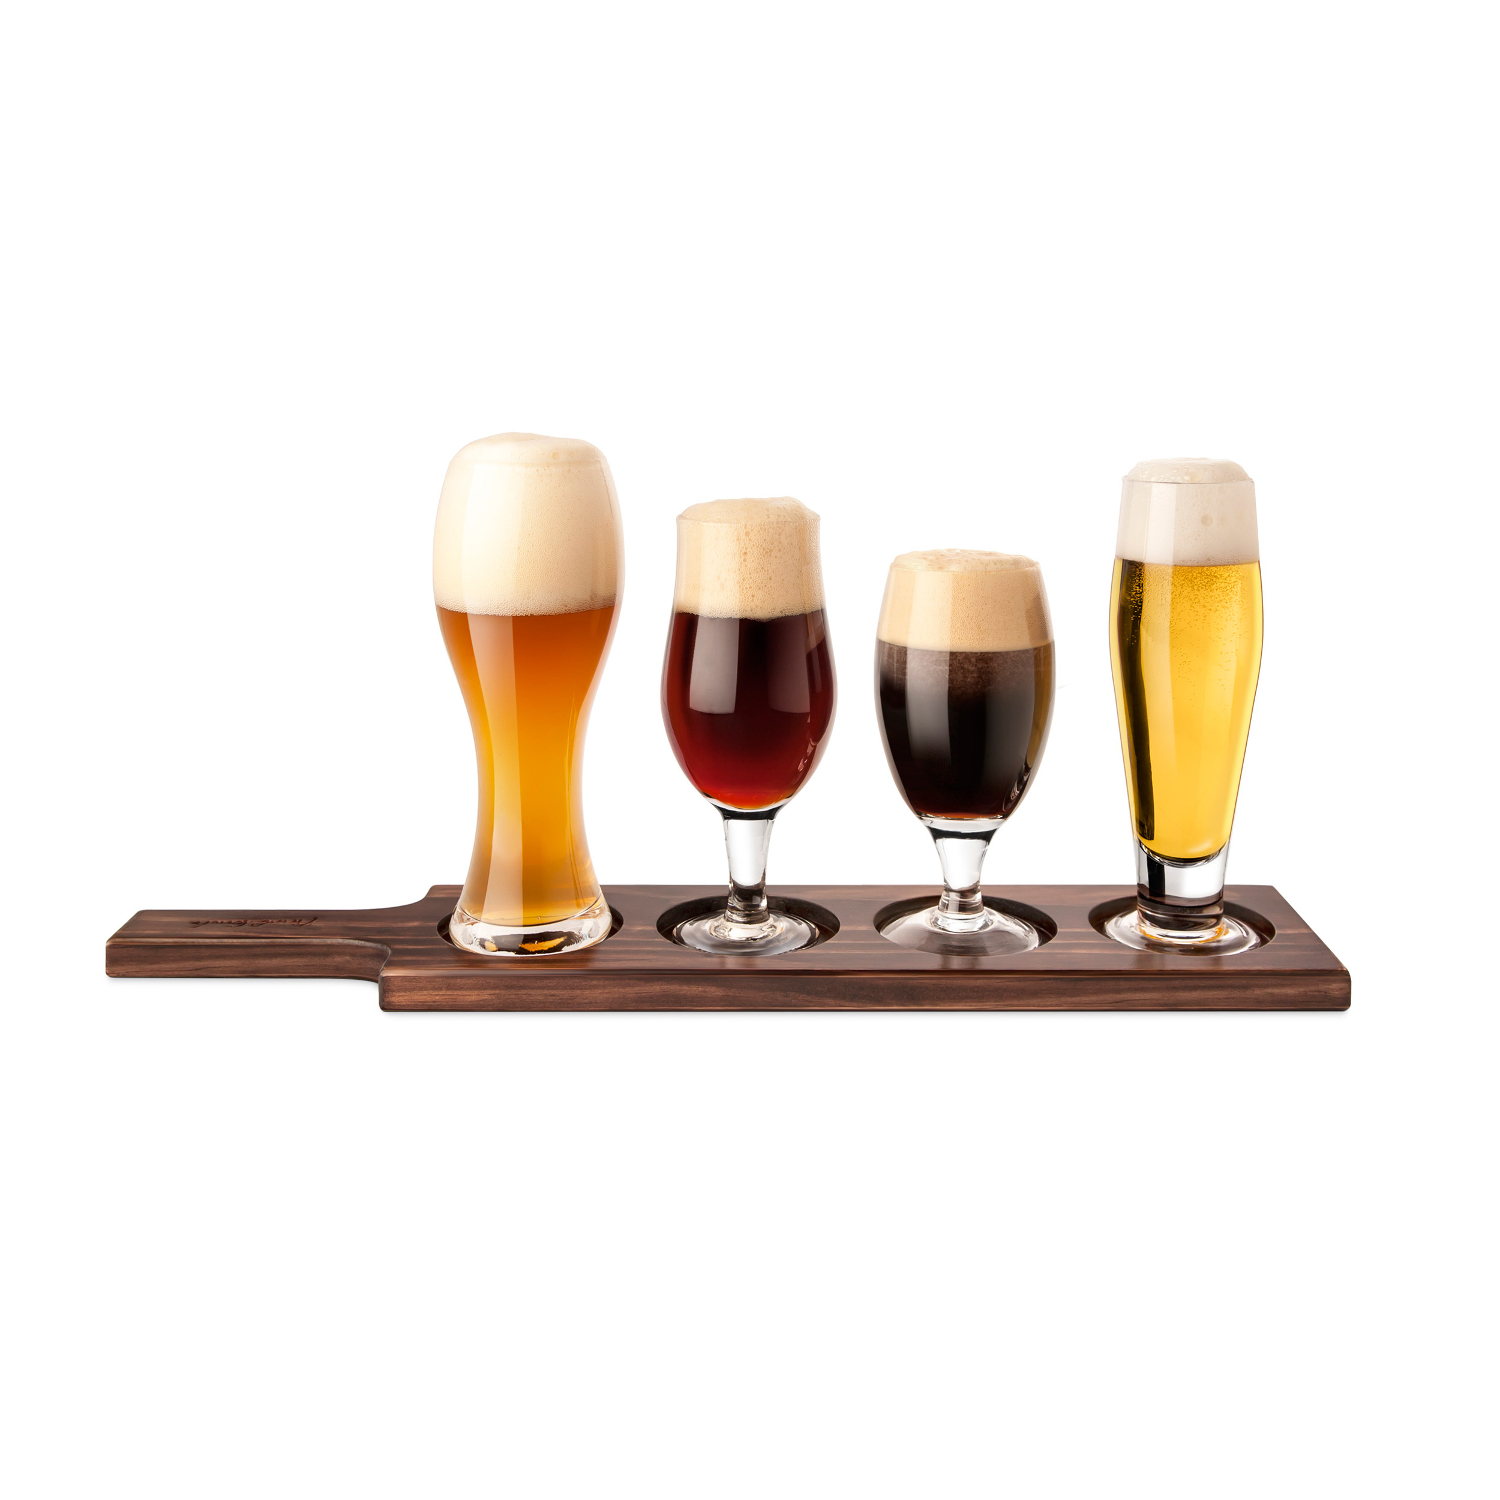 Final Touch 6 Piece Dark Wood and Glass Beer Tasting Paddle Set